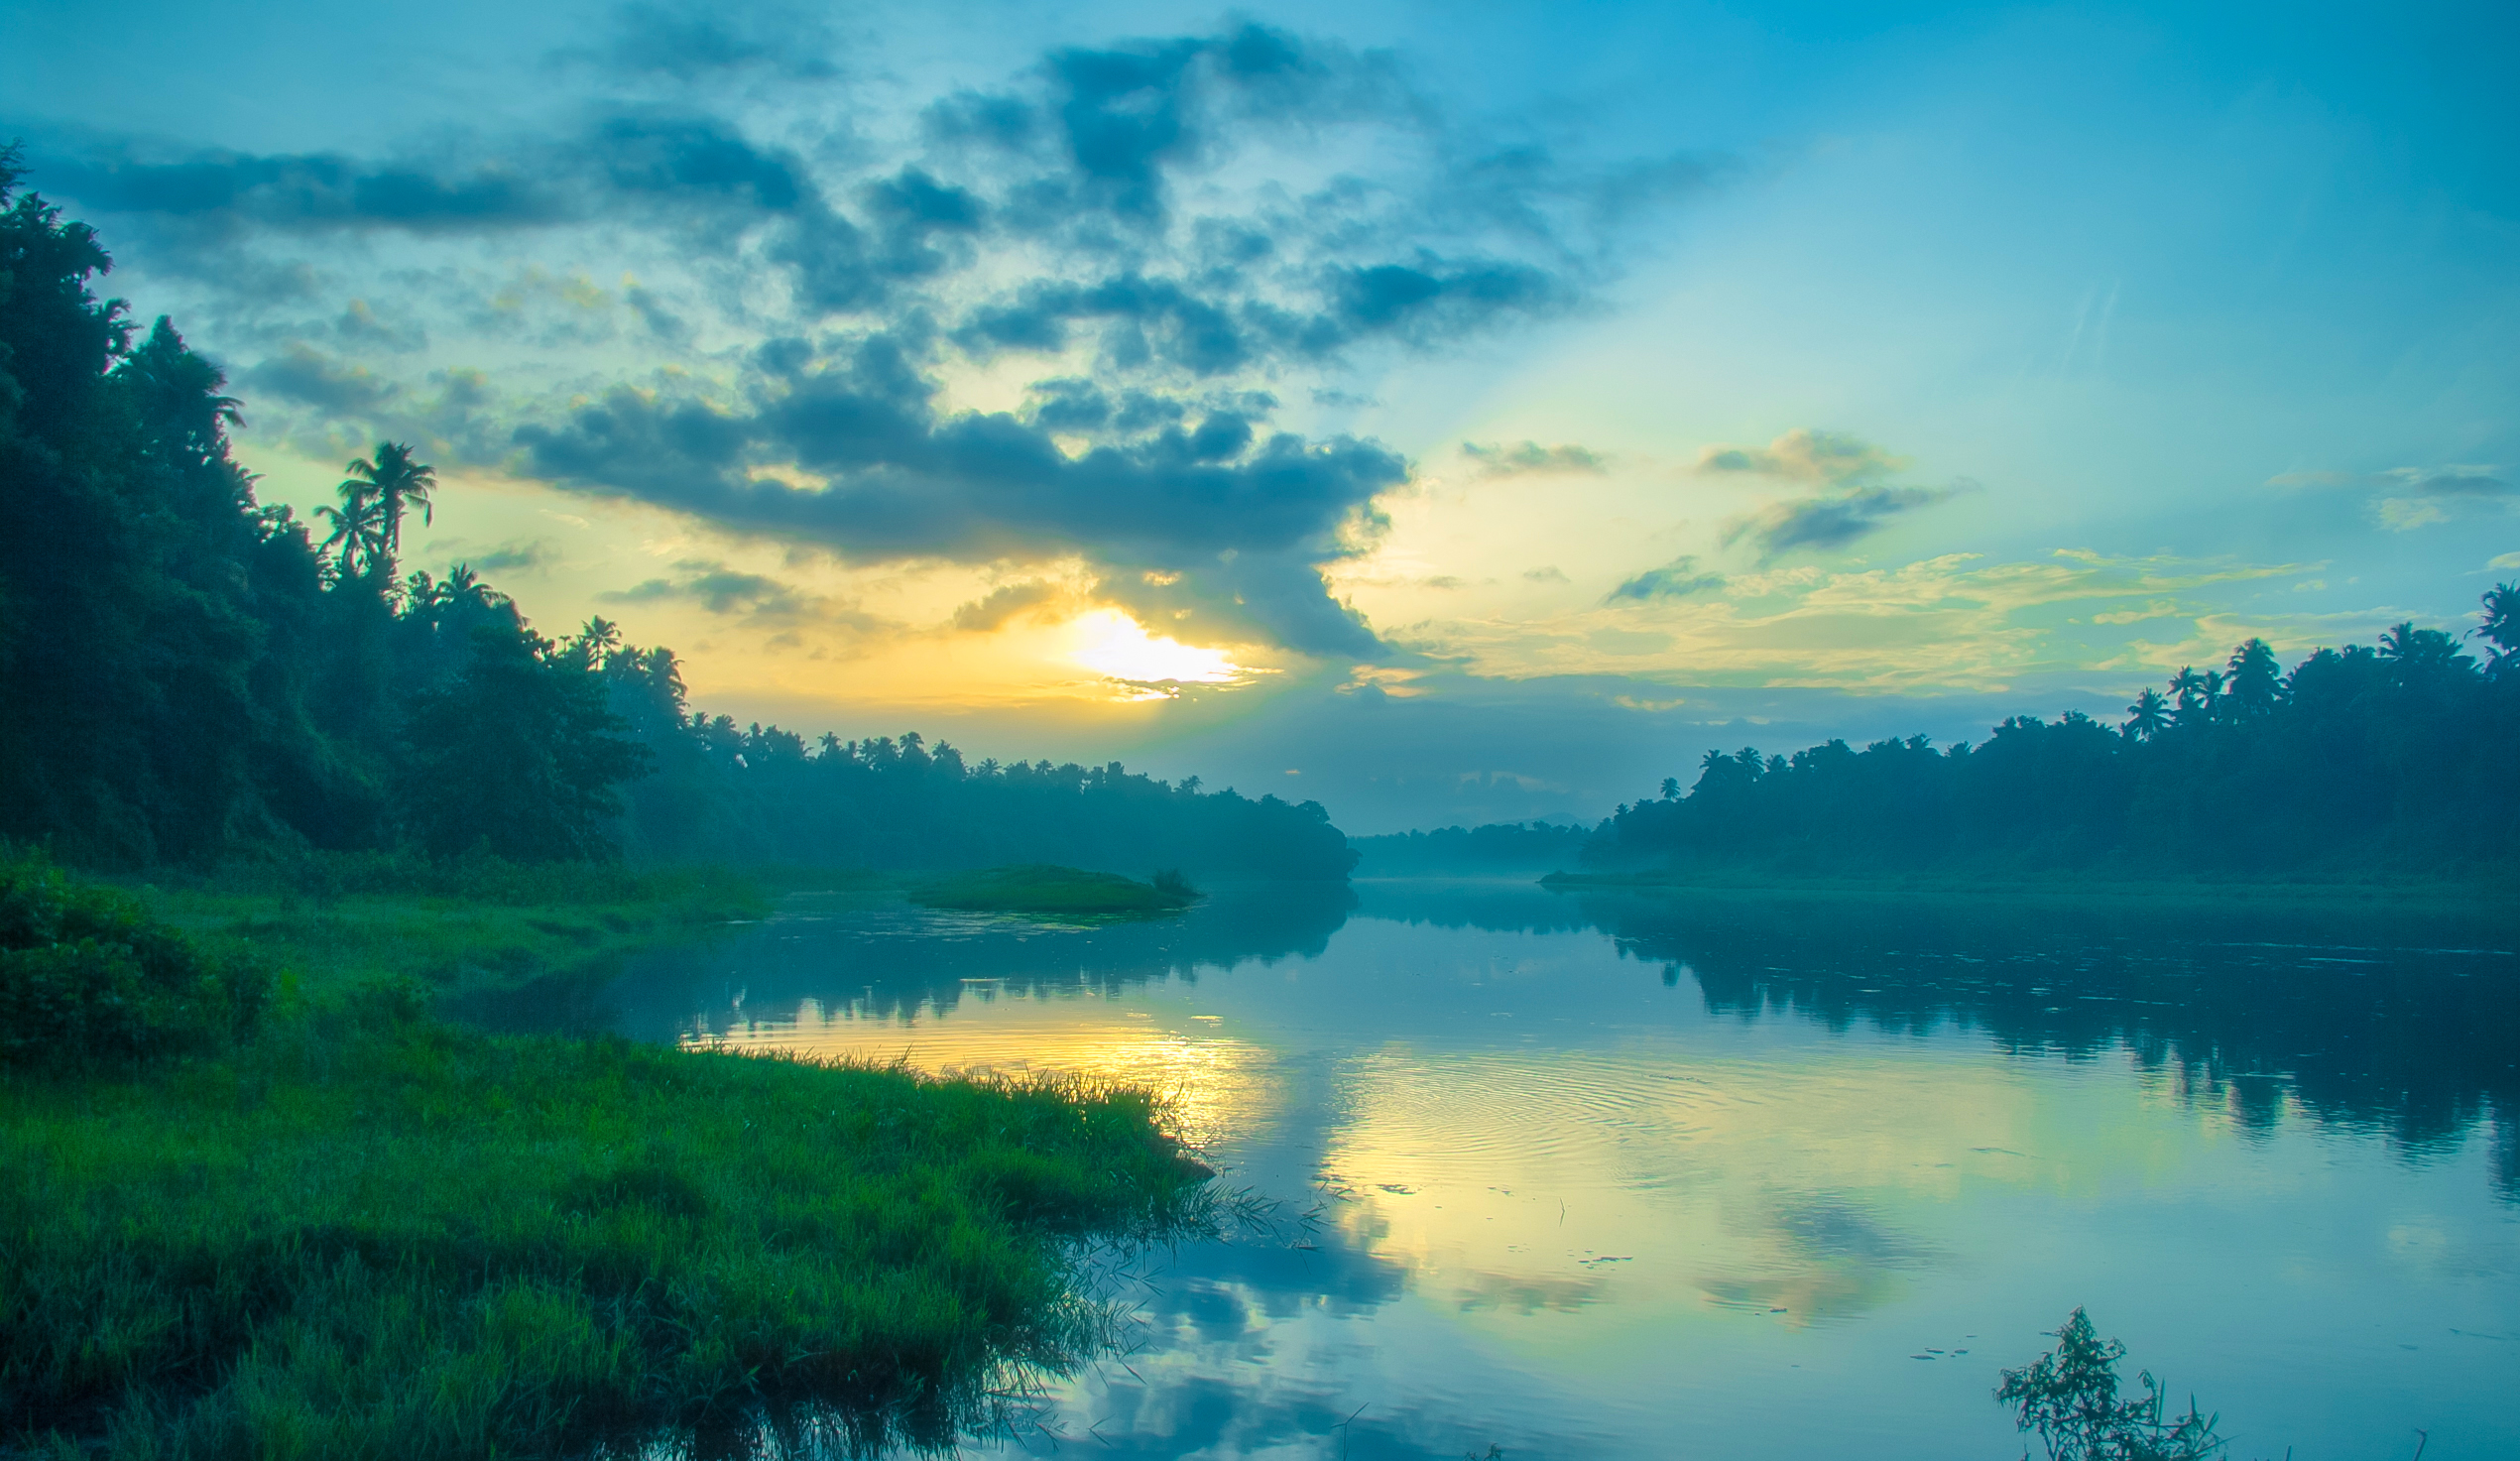 File chalakudy river bank on a summer wikimedia commons - Photos wallpaper ...